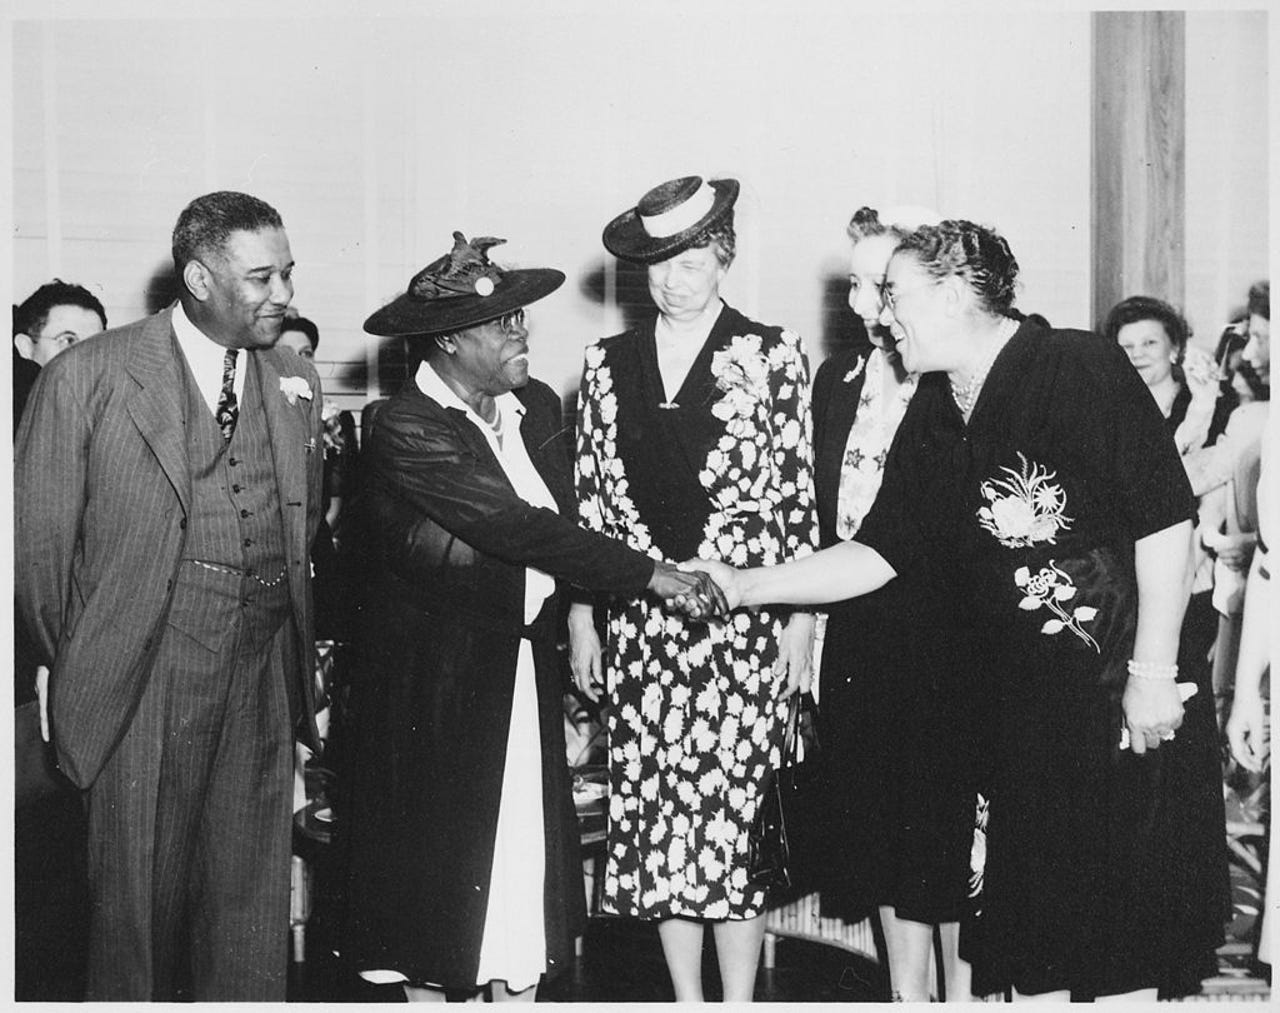 Mary McLeod Bethune, second from left, co-founder of Bethune Cookman University, became friends with Eleanor Roosevelt, center, wife of President Franklin Roosevelt.